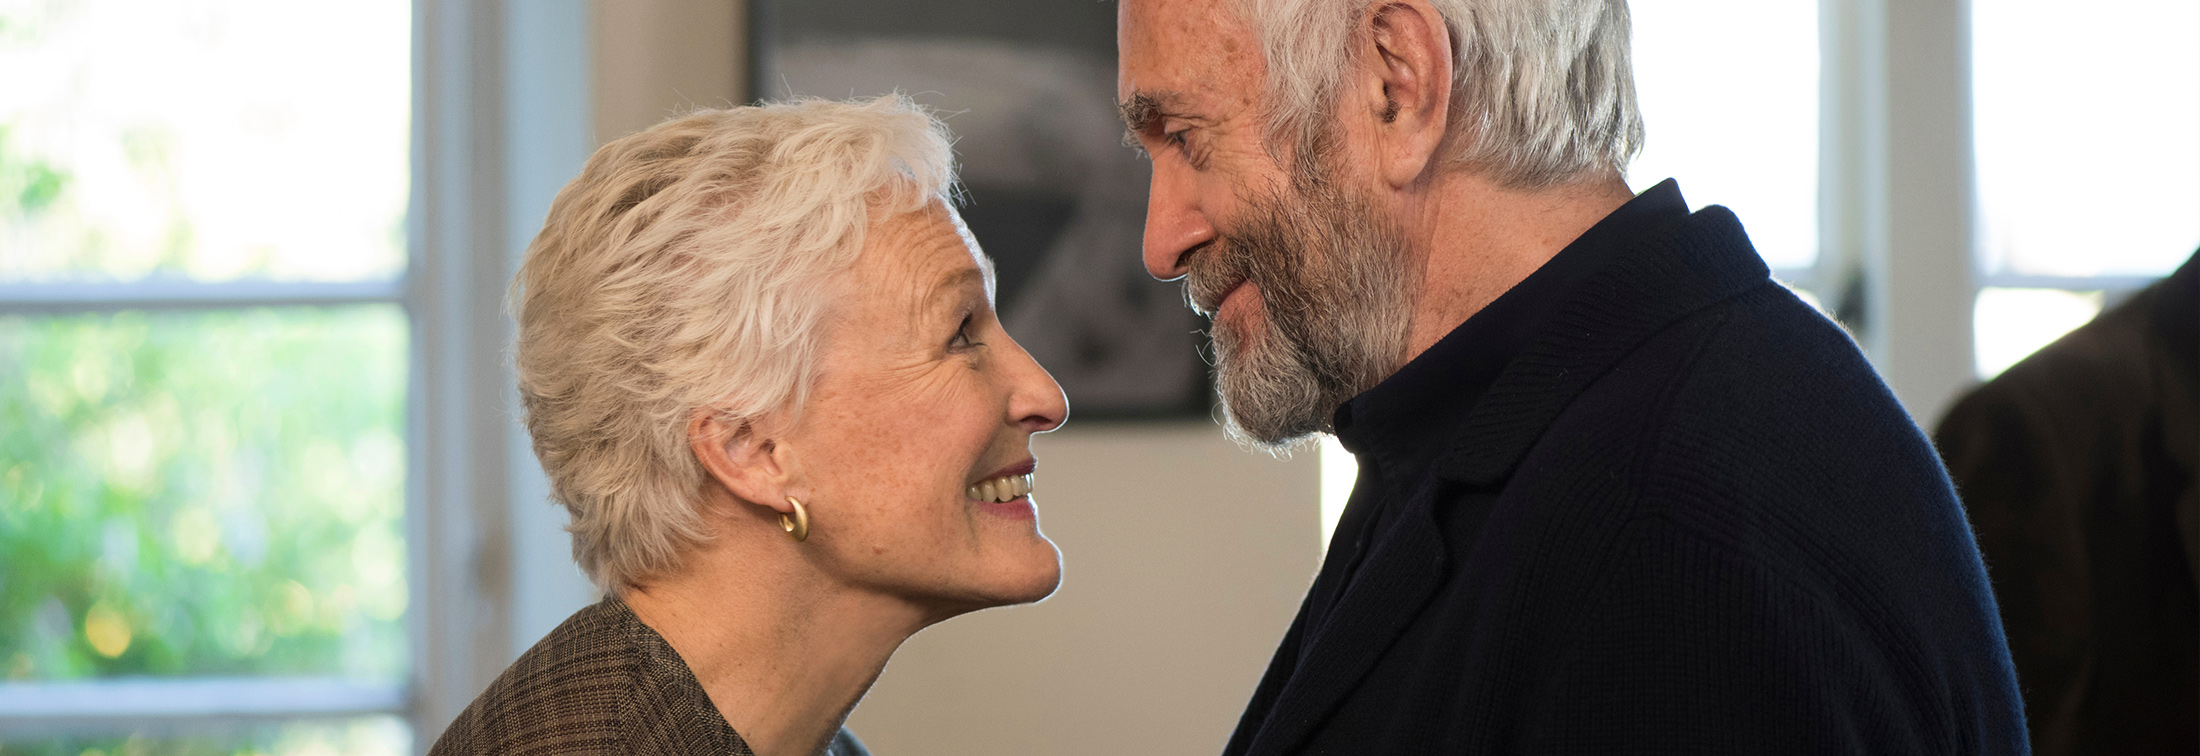 The Wife - Glenn Close's powerhouse performance